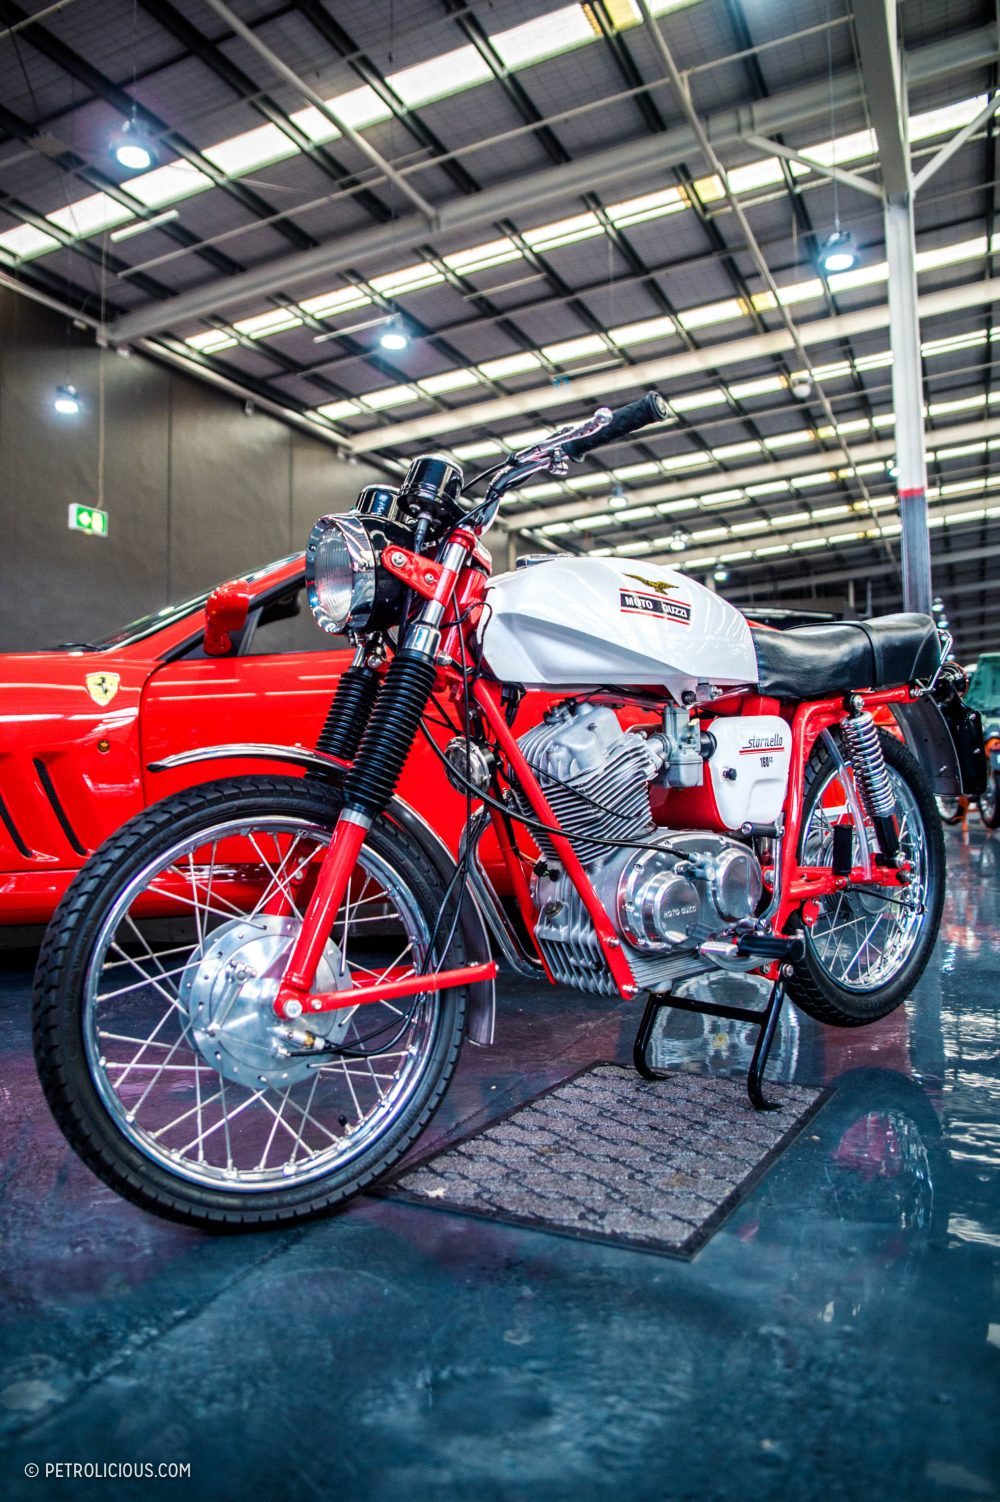 the gosford classic car museum is home to vibrant variety away in private garages around australia it s nice to finally see a large portion of them on public display under one roof for everyone to enjoy